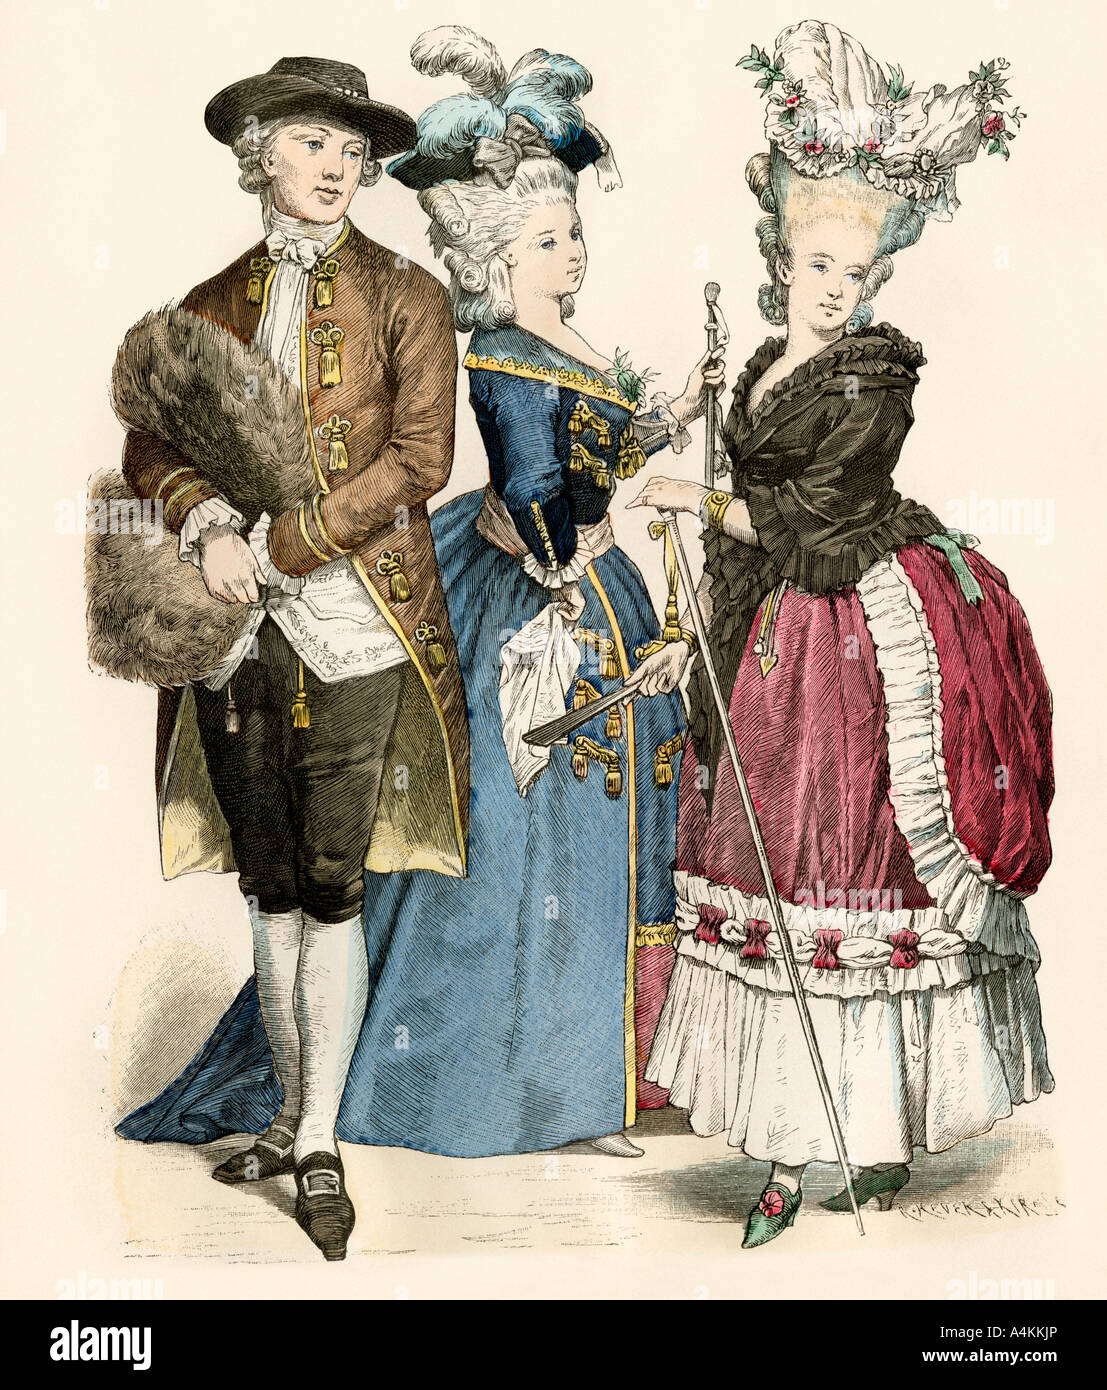 French clothing and hair fashion 1770s Stock Photo ...